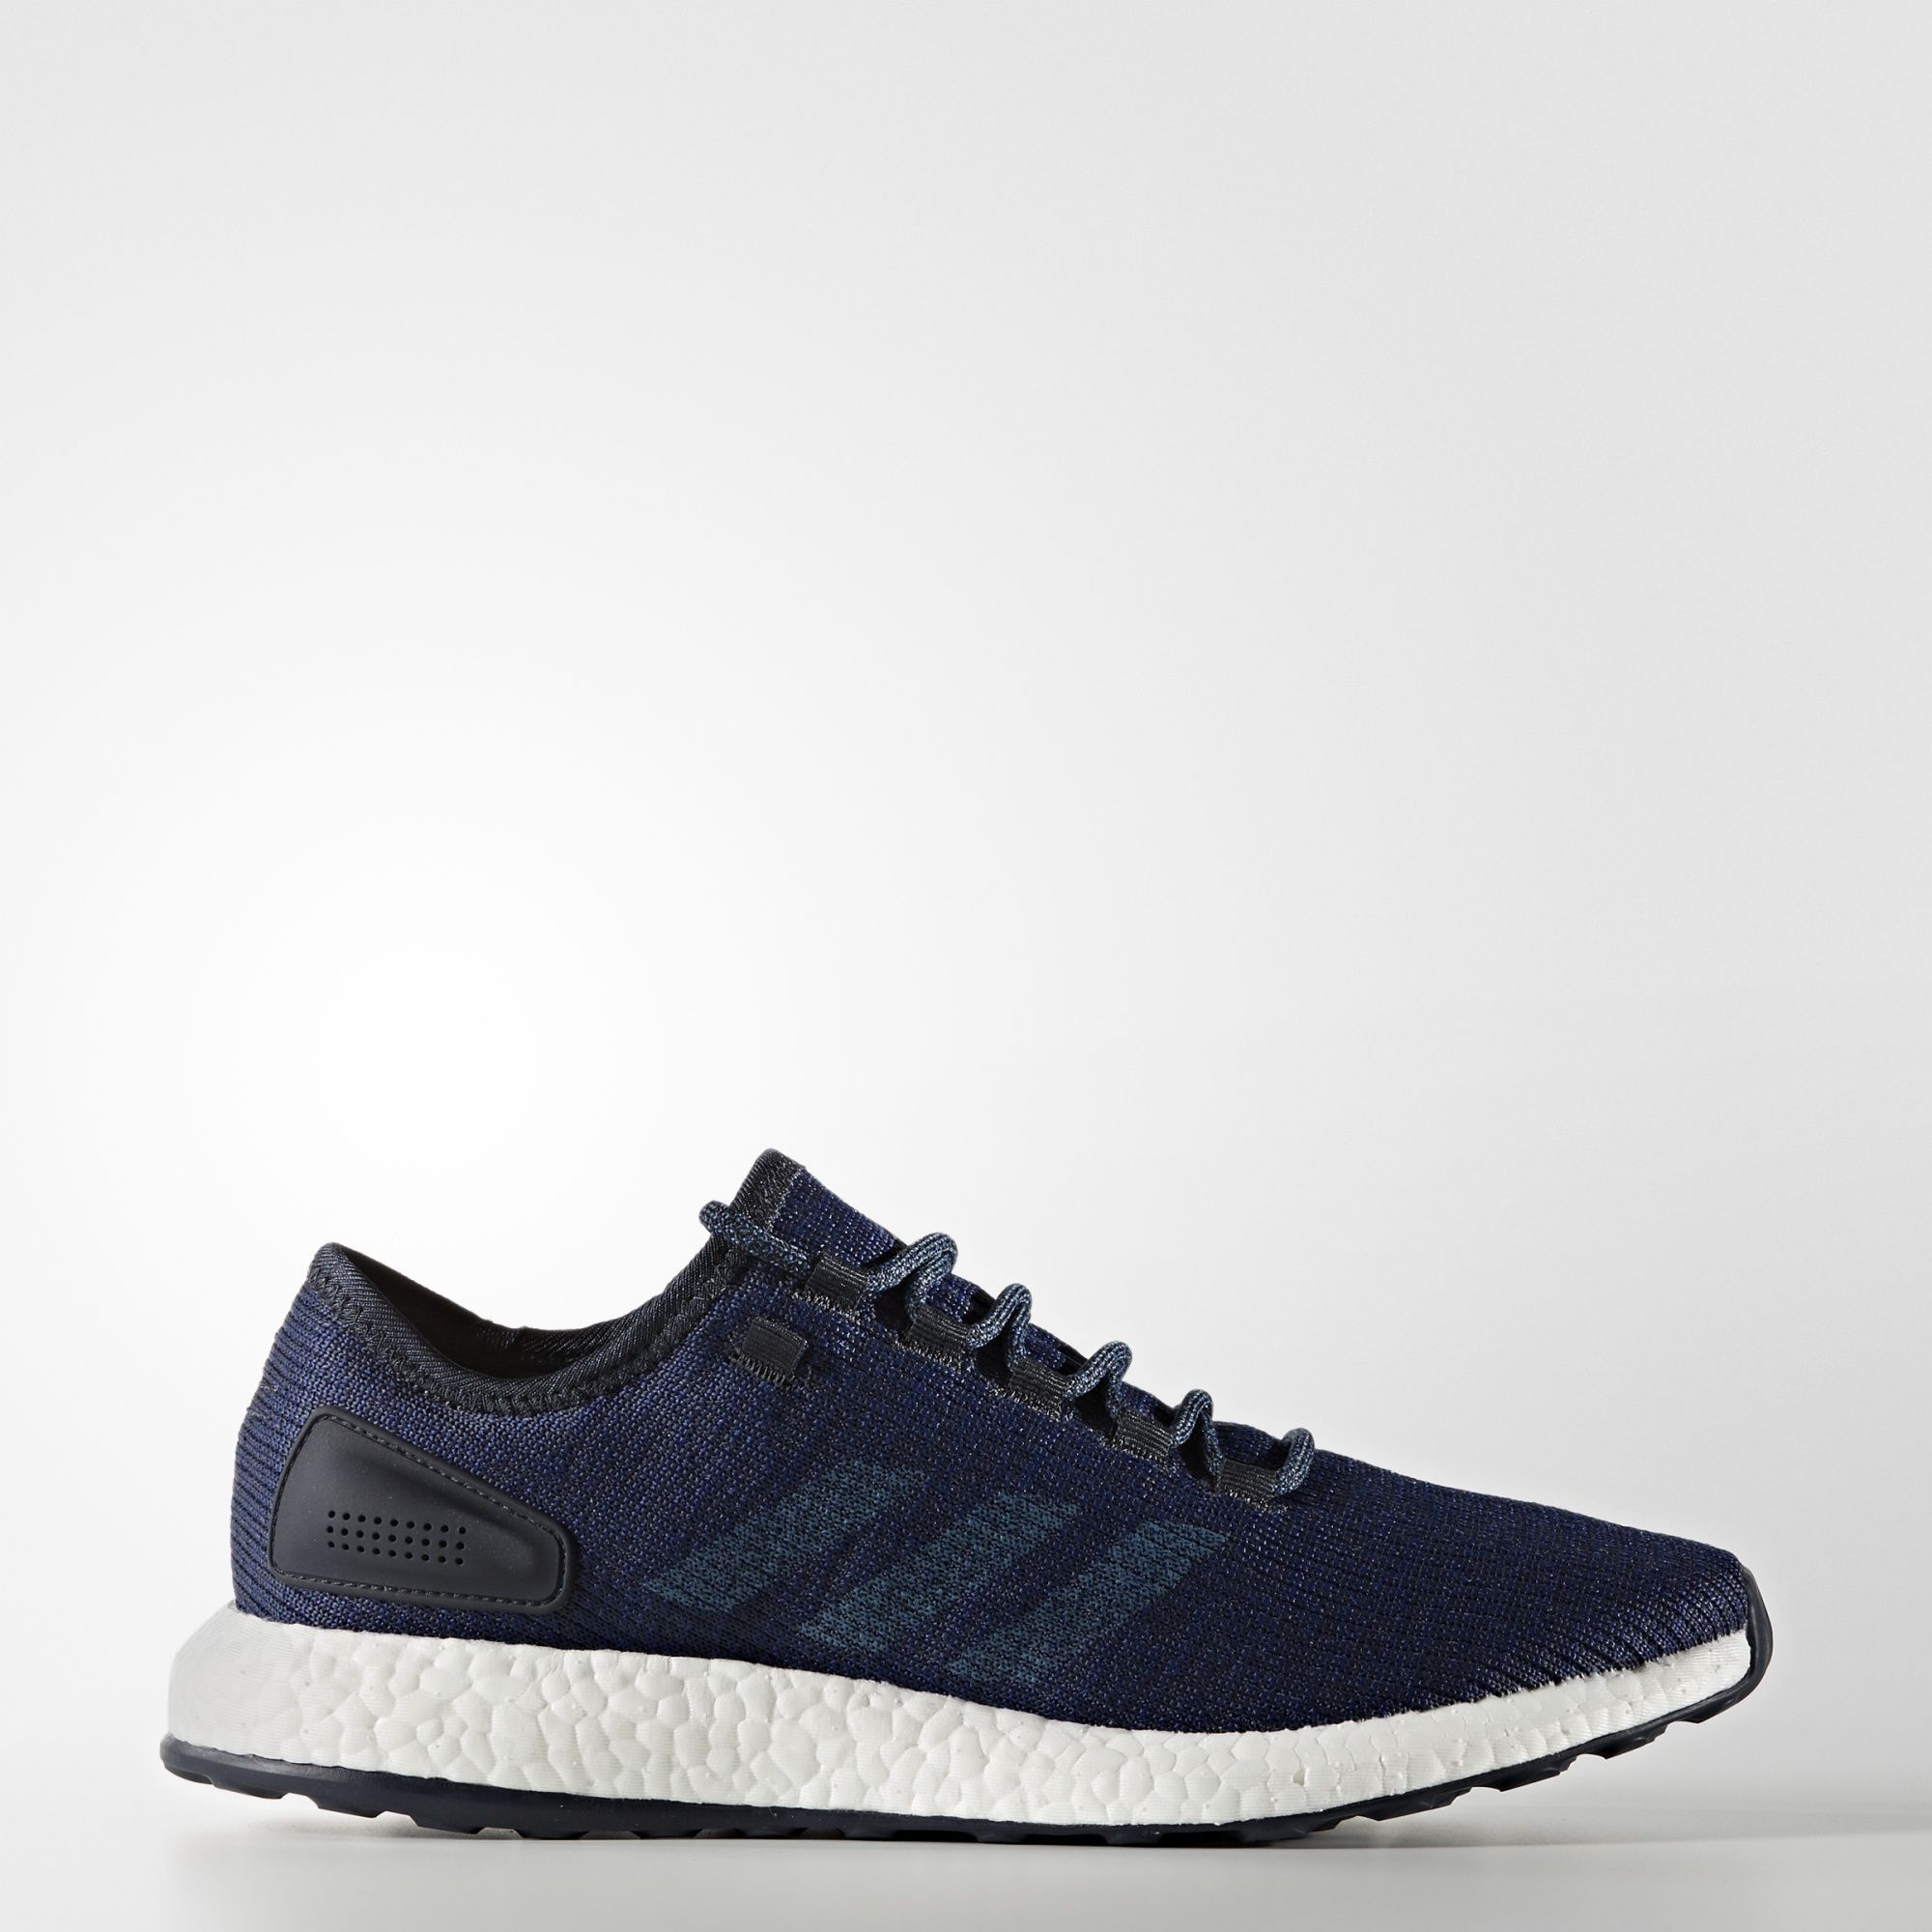 Boost shoes, Adidas pure boost